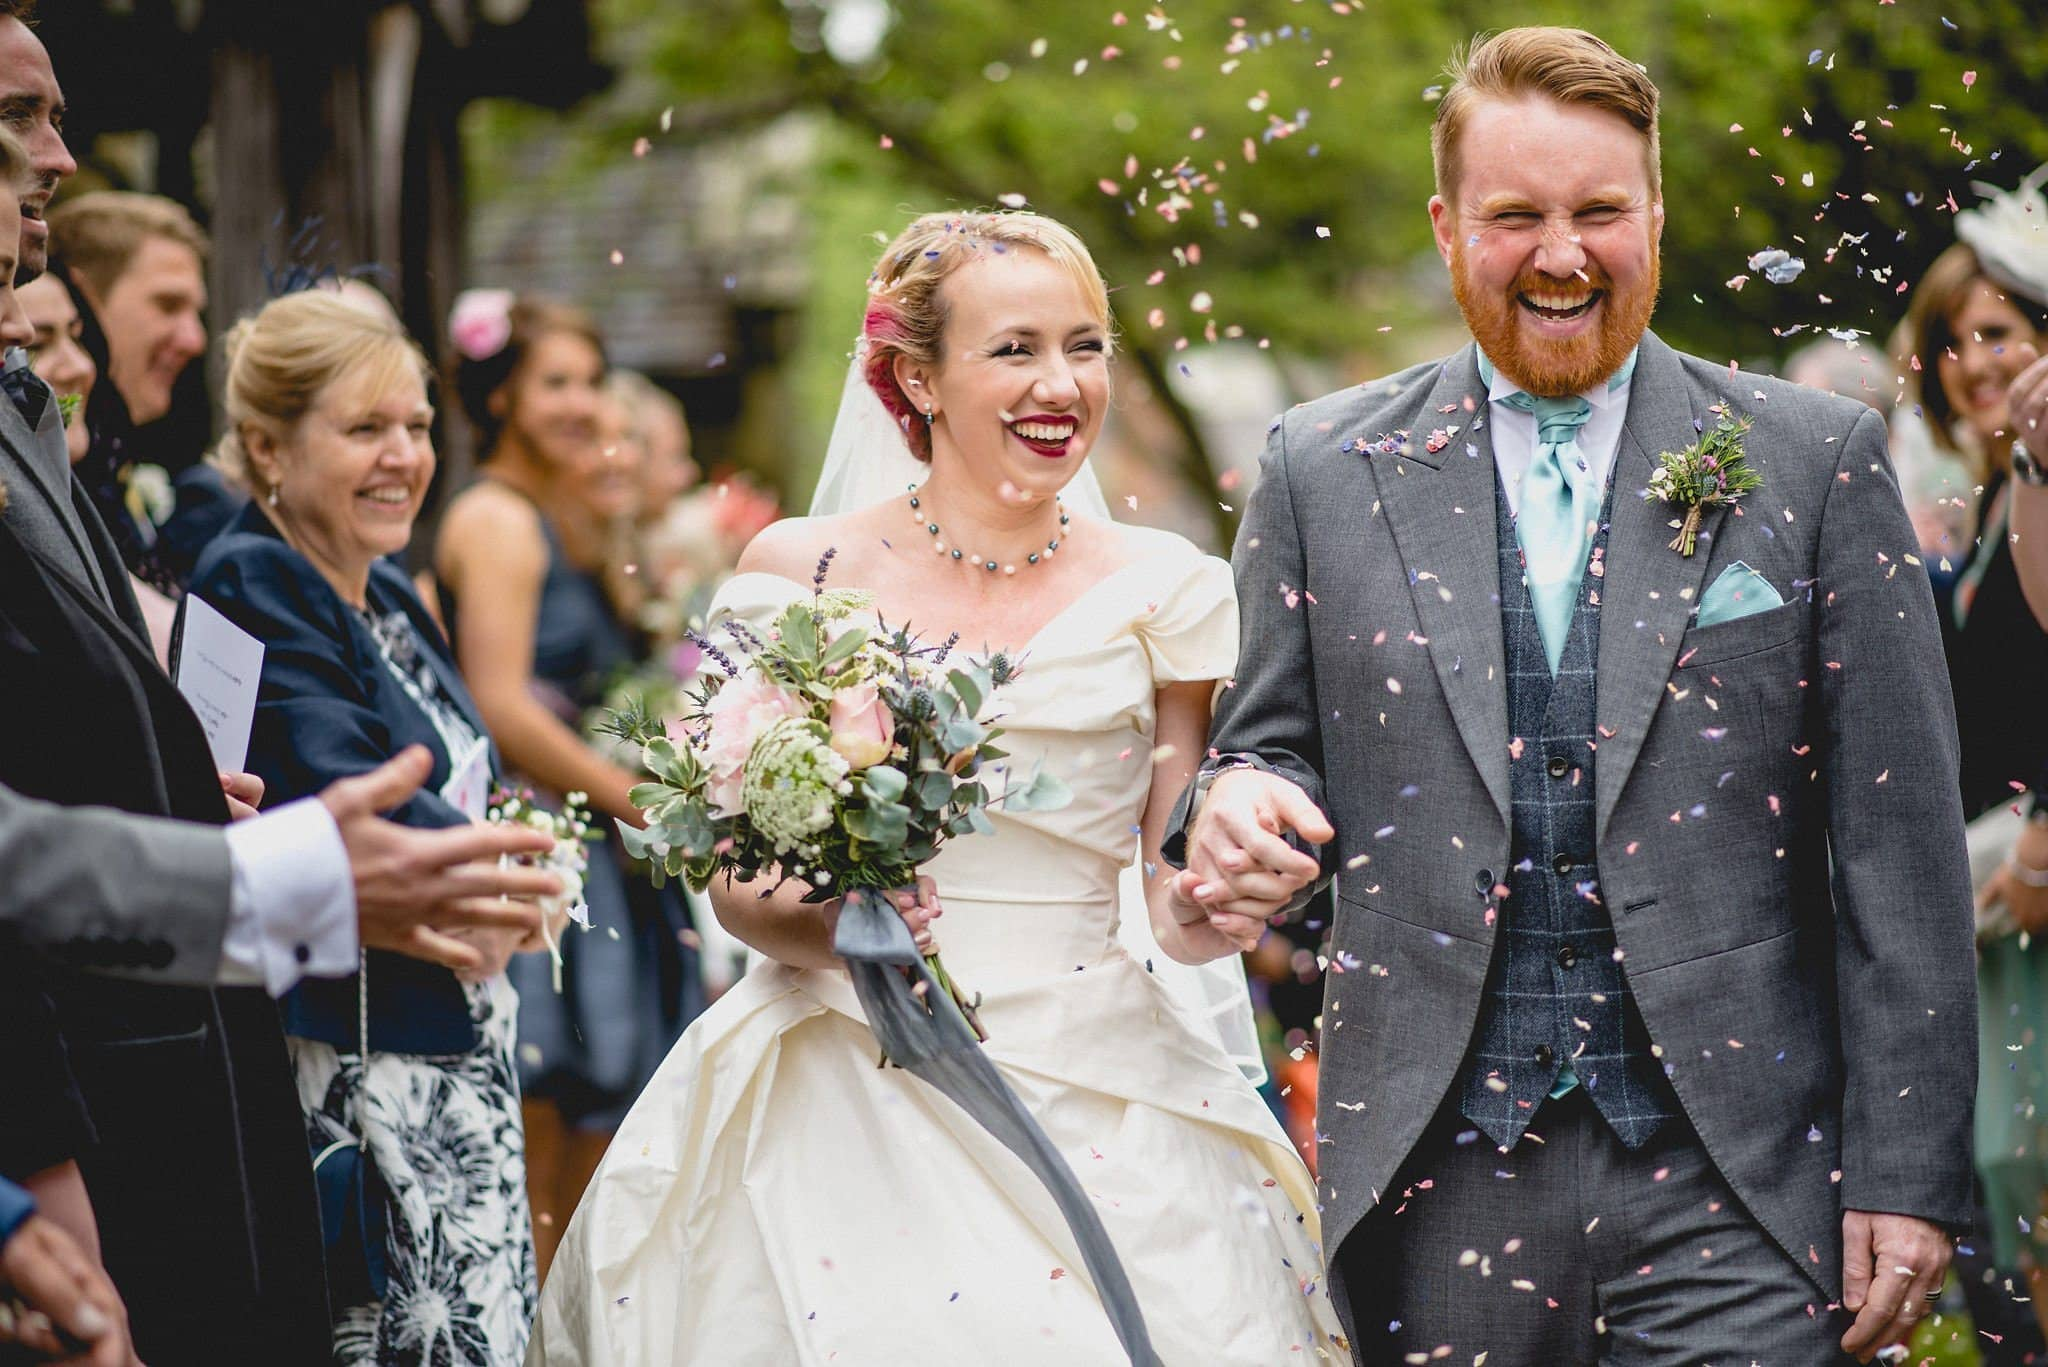 The newlyweds walk through the churchyard in a shower of petal confetti